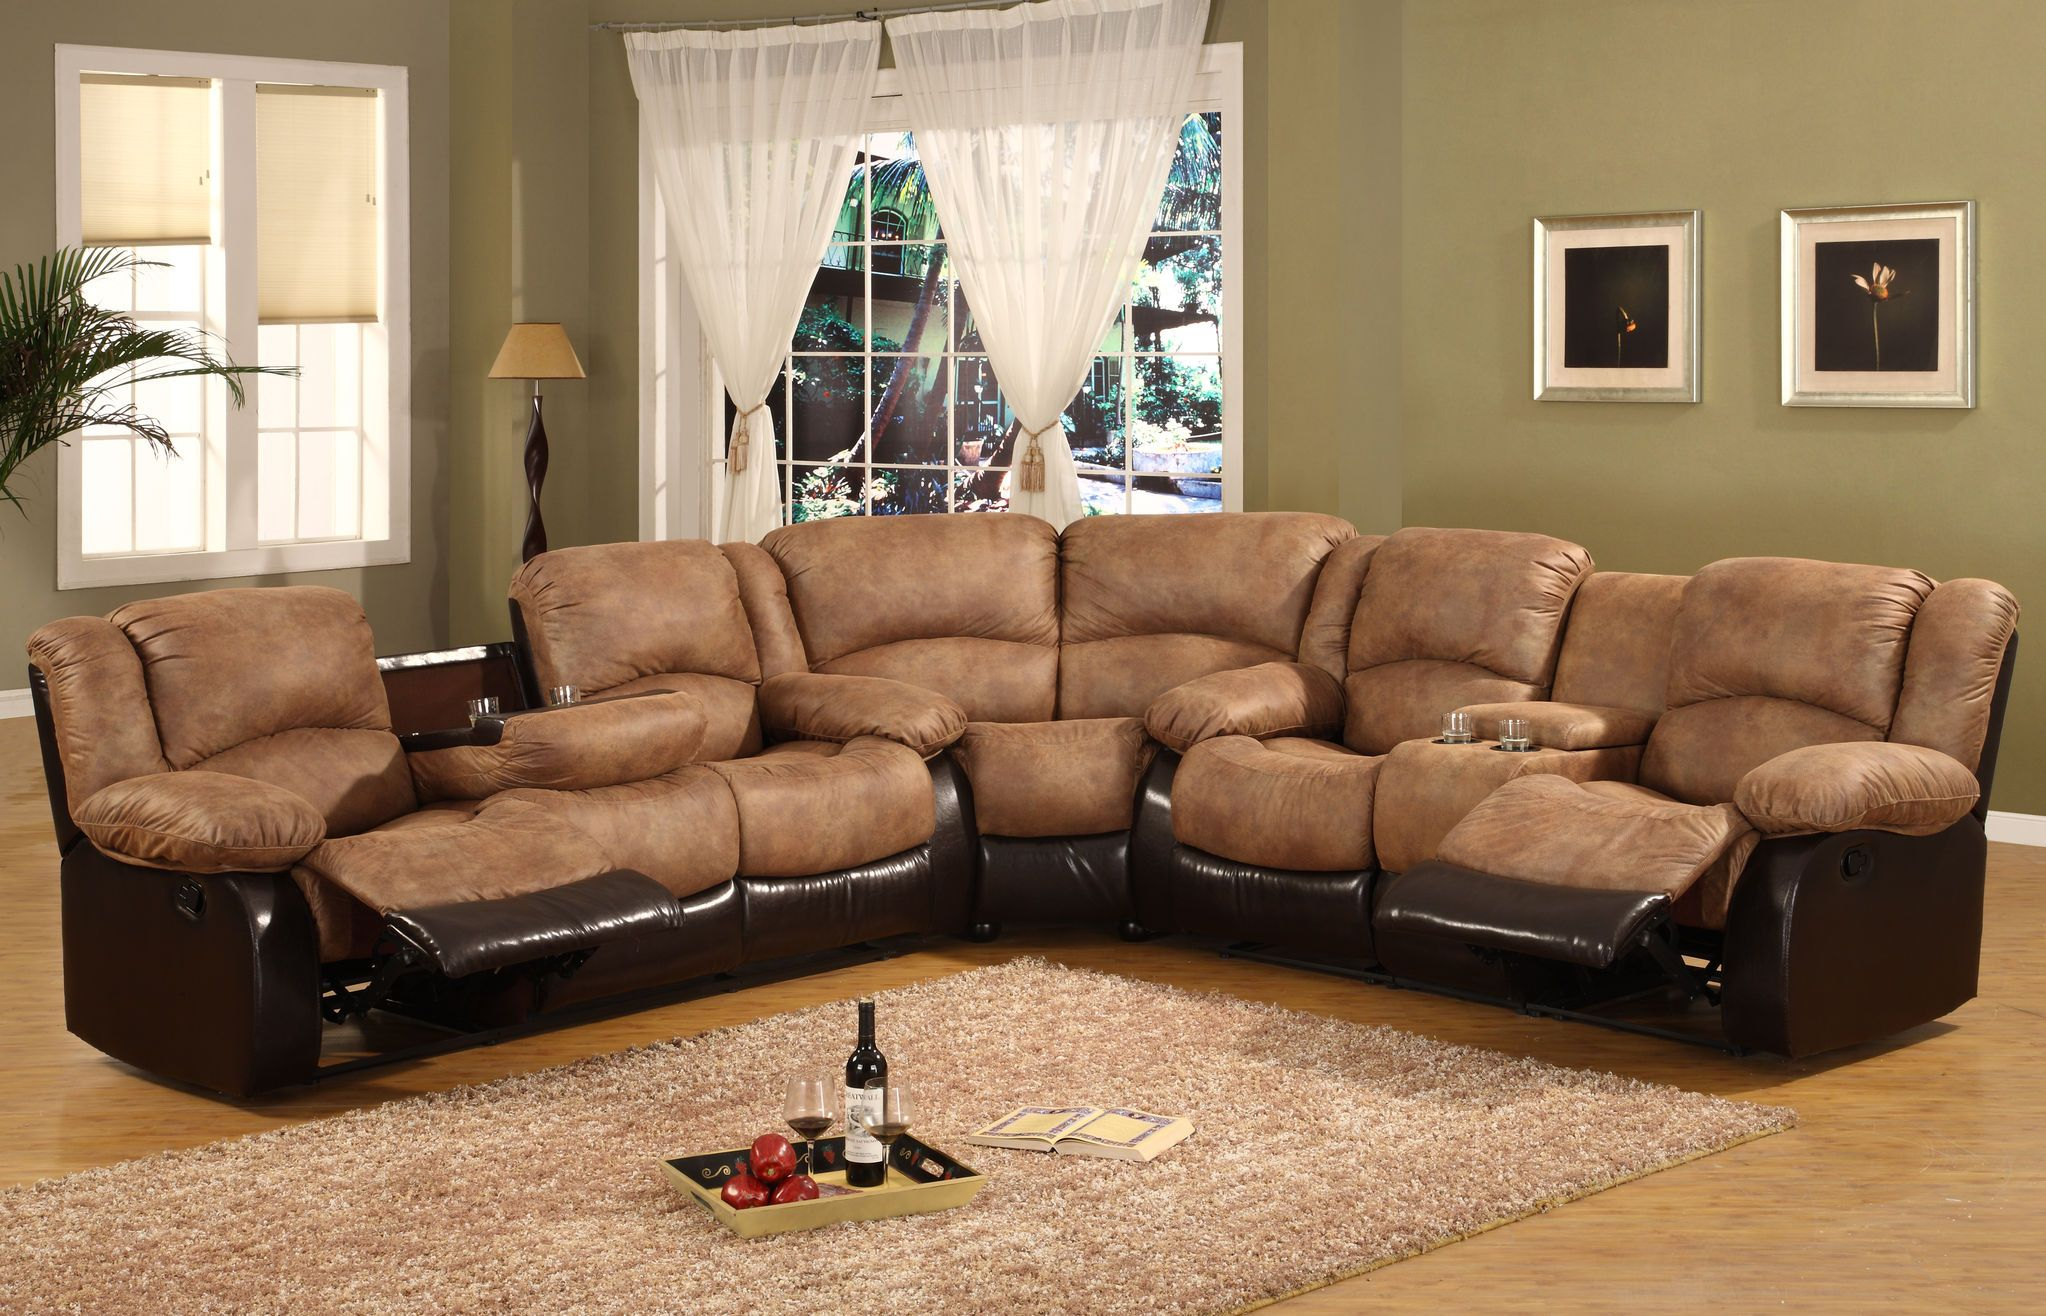 Nice Lazy Boy Sectional Prices , Inspirational Lazy Boy Sectional Prices 19  Modern Sofa Ideas With